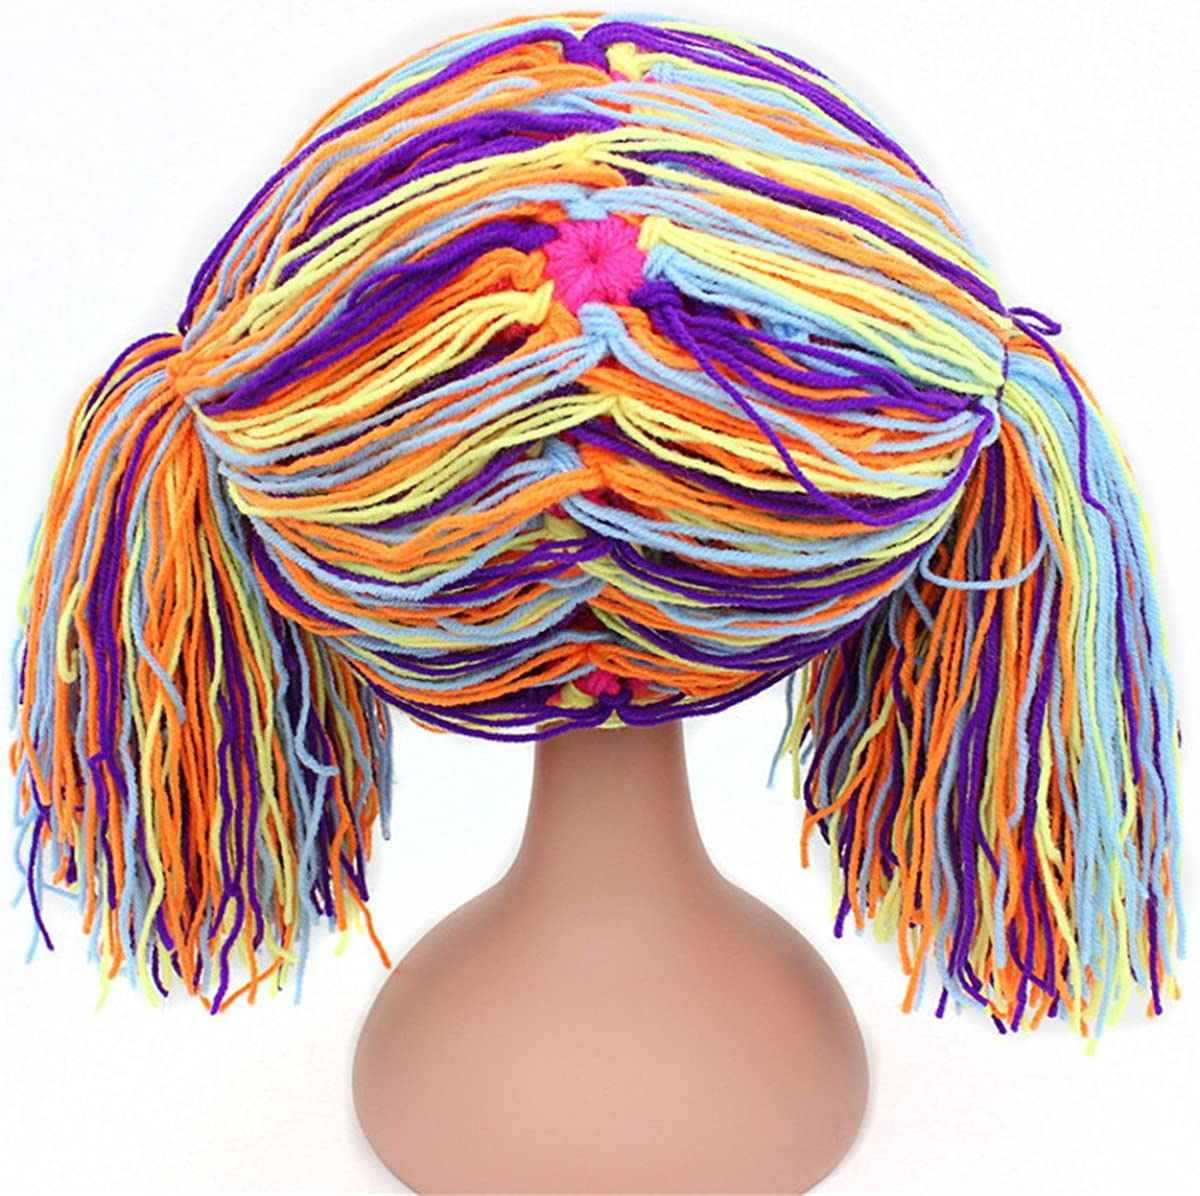 Qhome Girls Crocheted Cabbage Patch Clown Pigtail Costumes Hat Halloween Wig Funny Hat Carnival Winter Hat for Kids